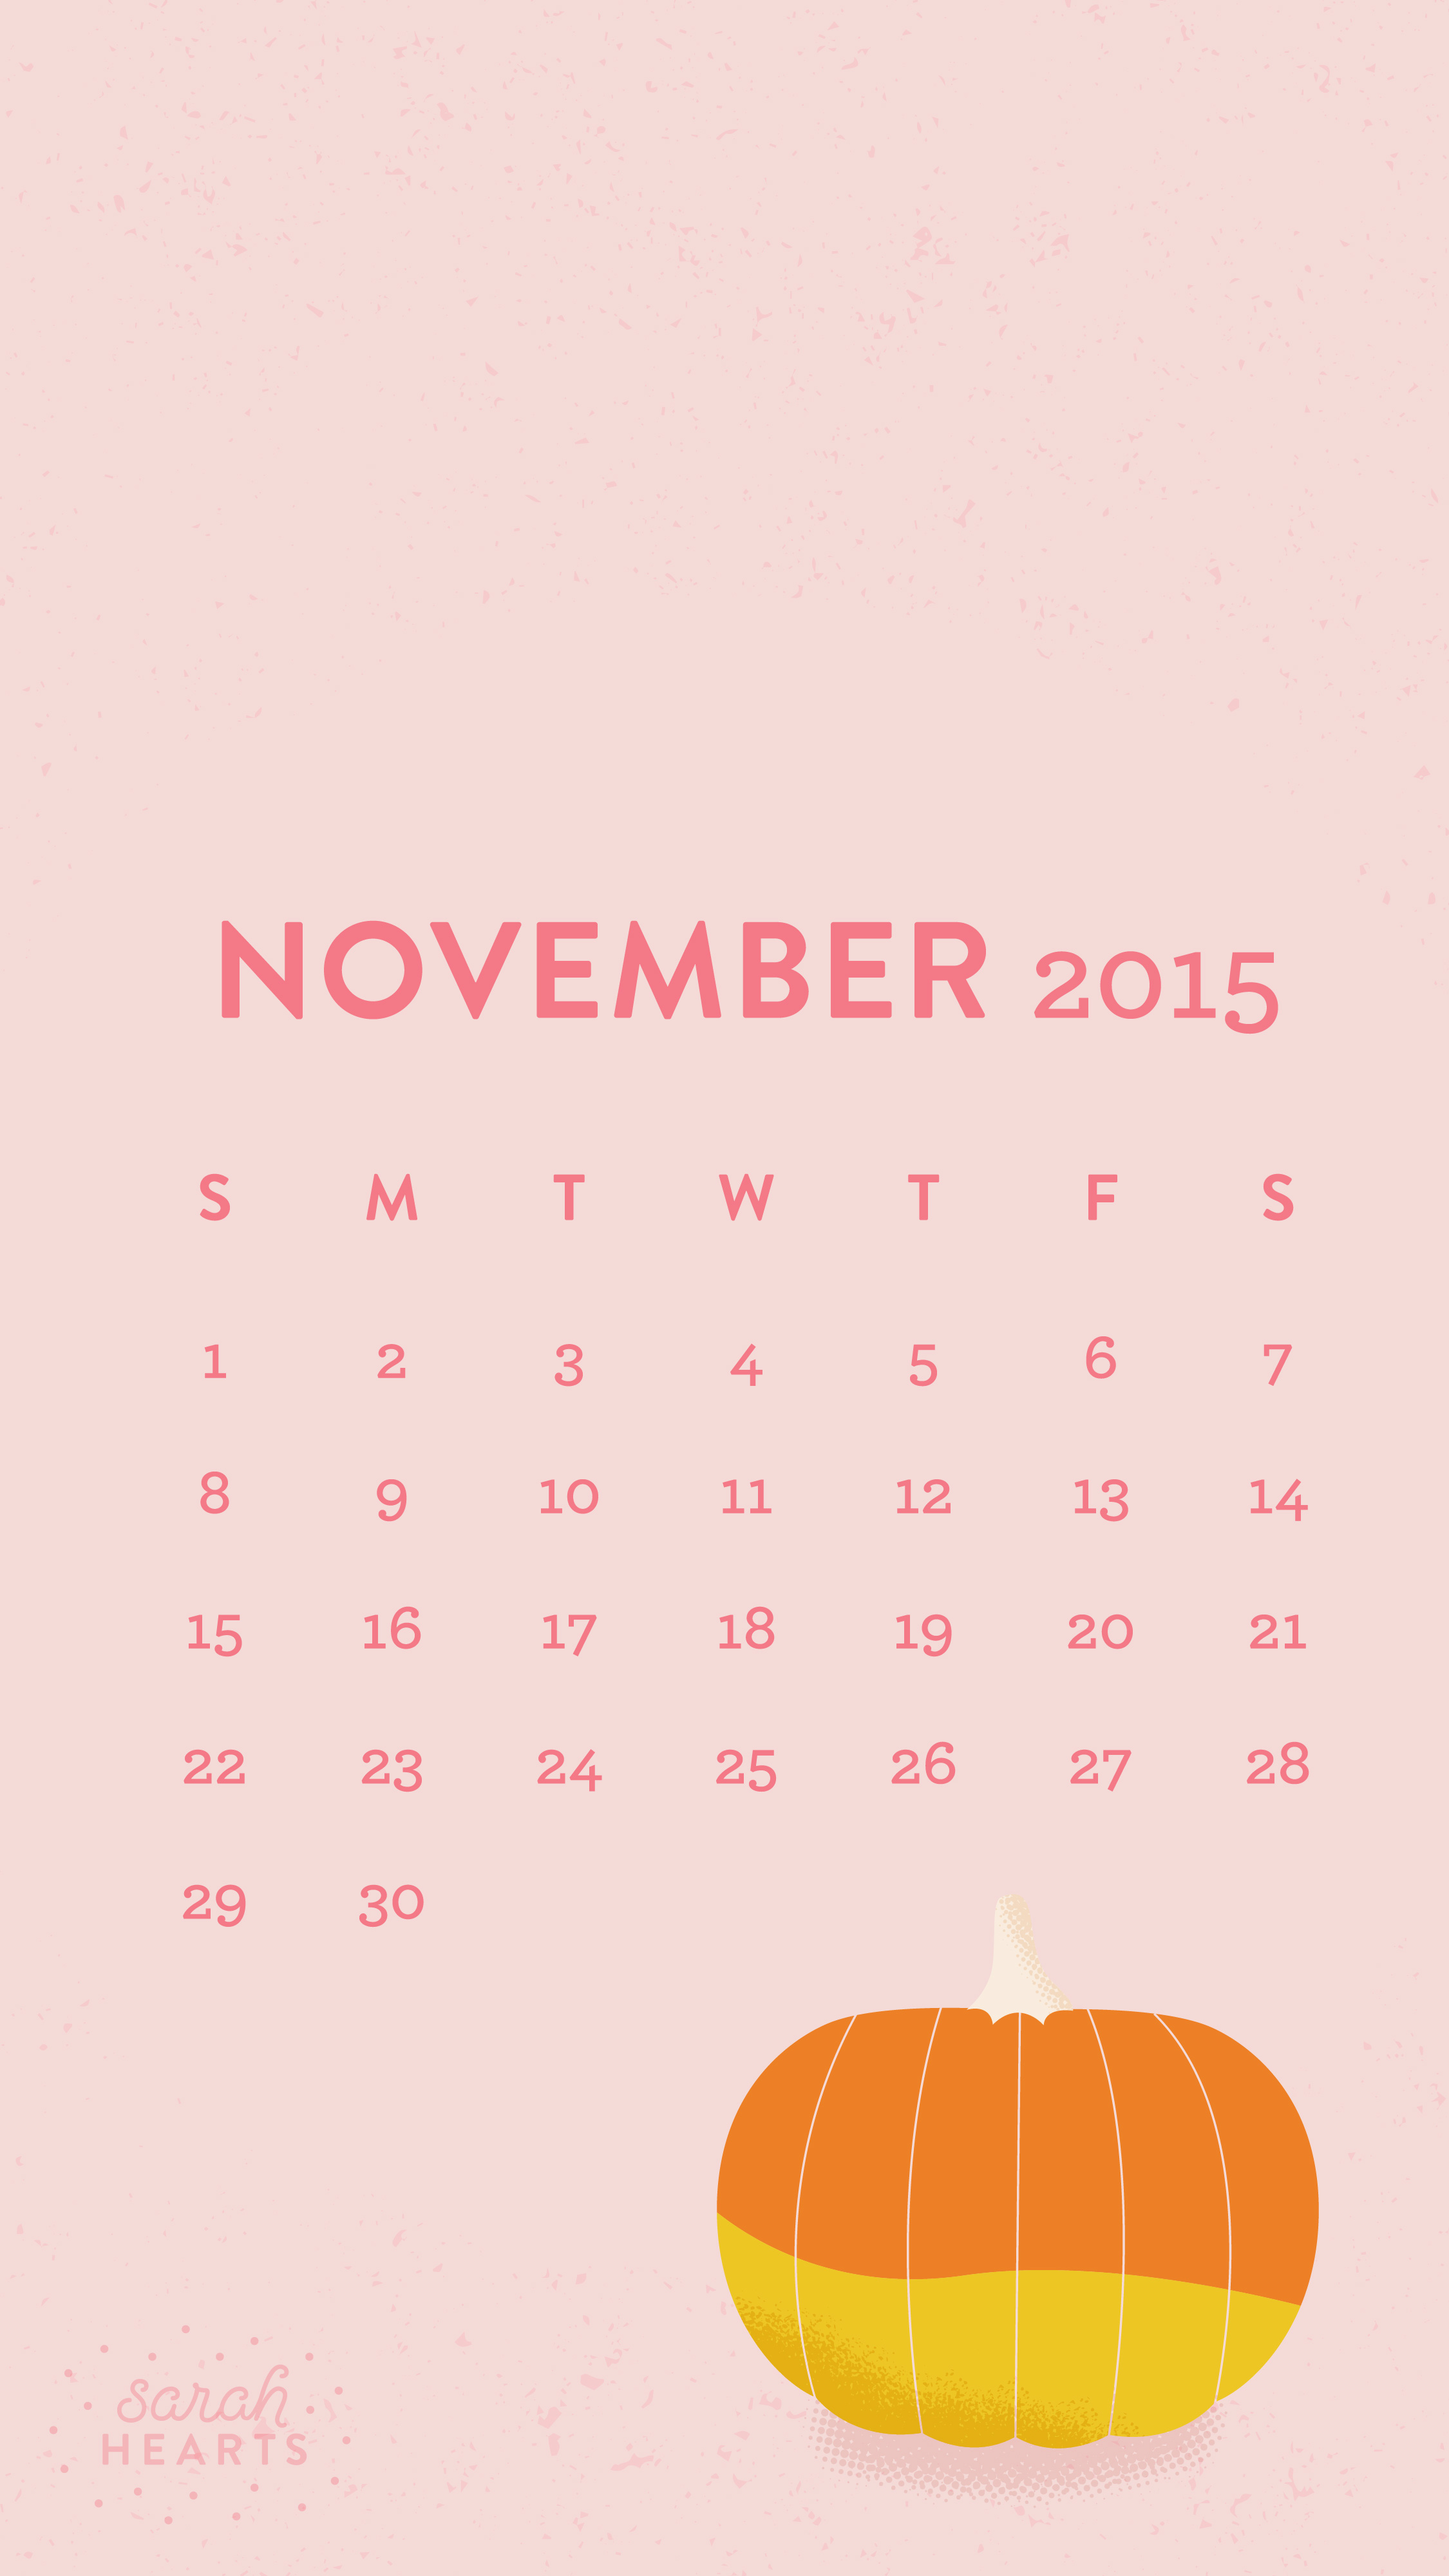 Desktop Wallpaper Pinterest Fall November 2015 Calendar Wallpaper Sarah Hearts